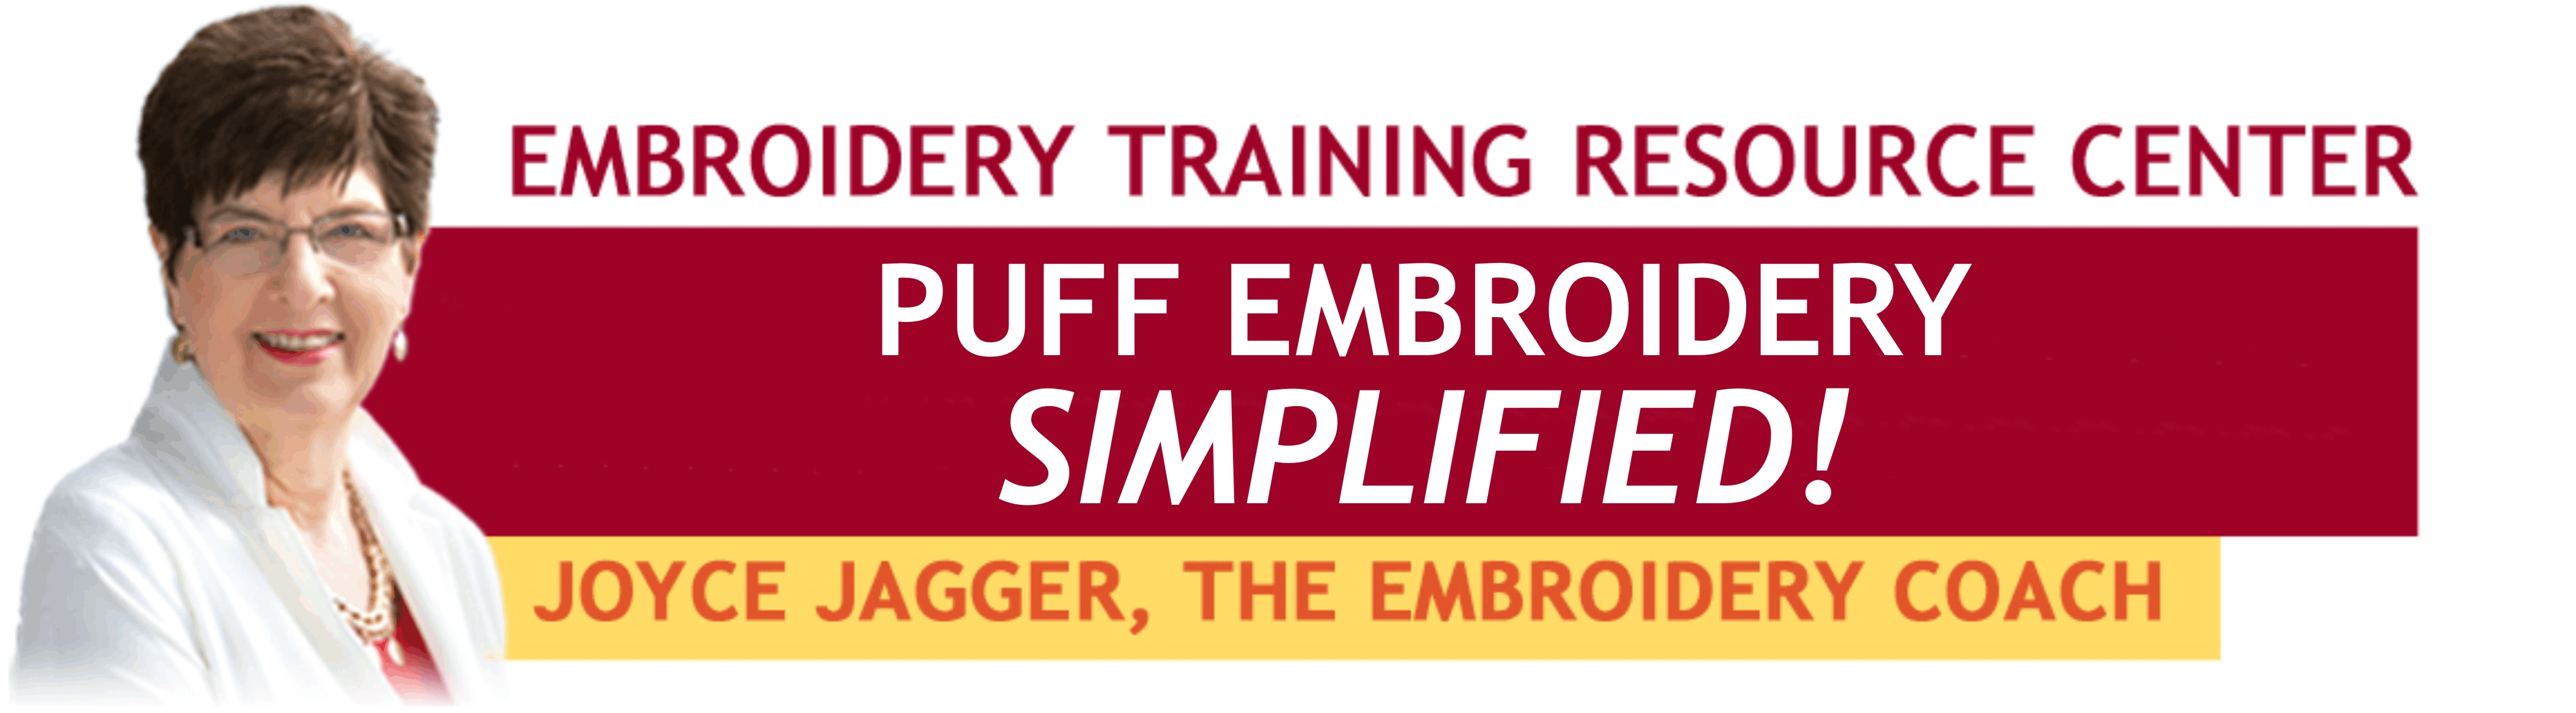 Puff Embroidery SIMPLIFIED!